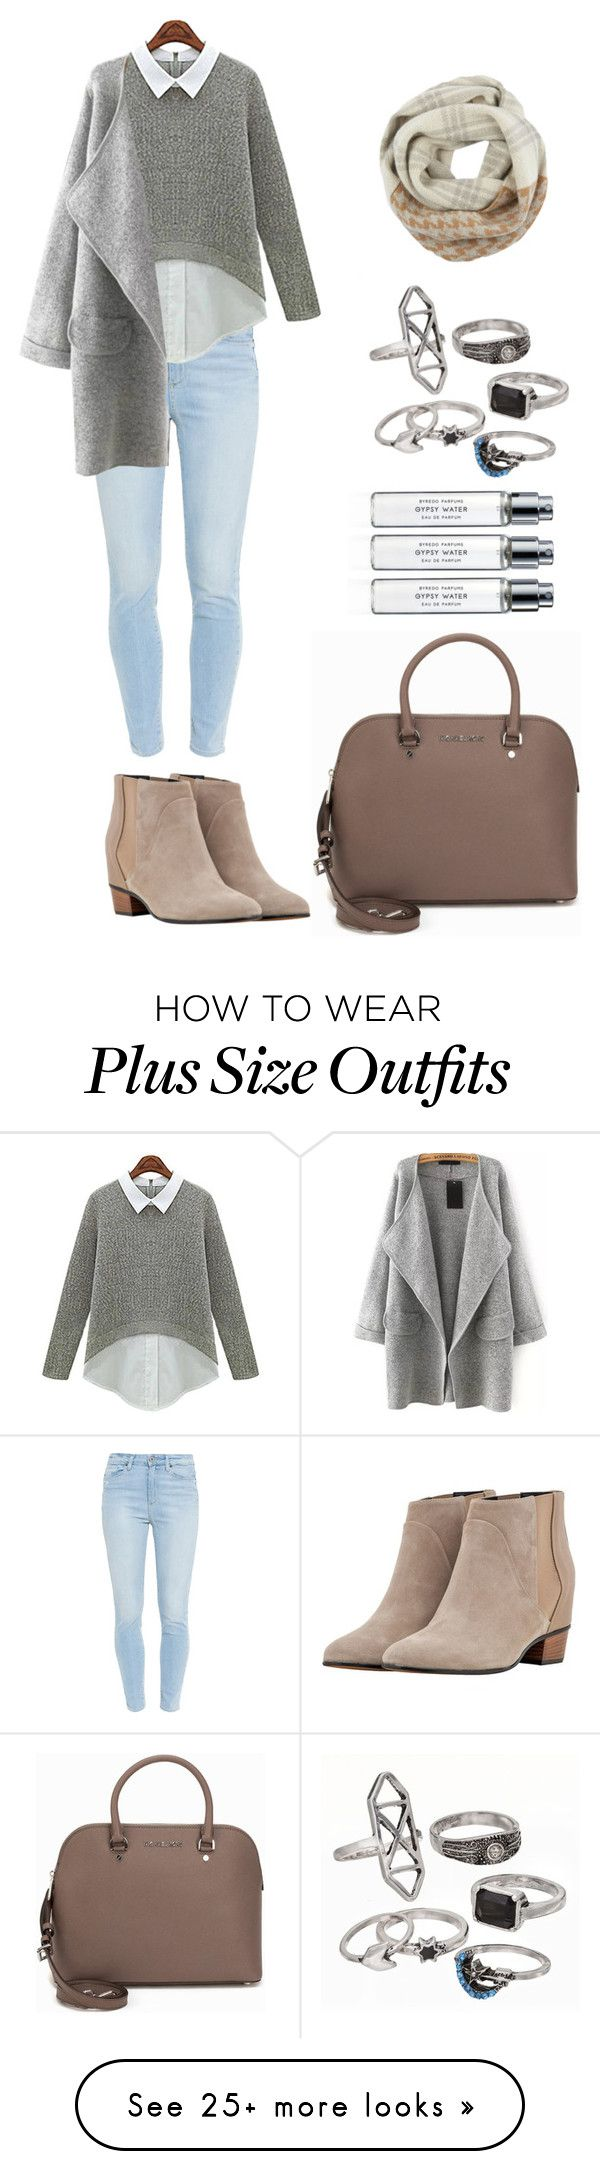 """""""Cold"""" by honeyat on Polyvore featuring Byredo, Mudd, MICHAEL Michael Kors, Paige Denim, Augusta and Woolrich"""